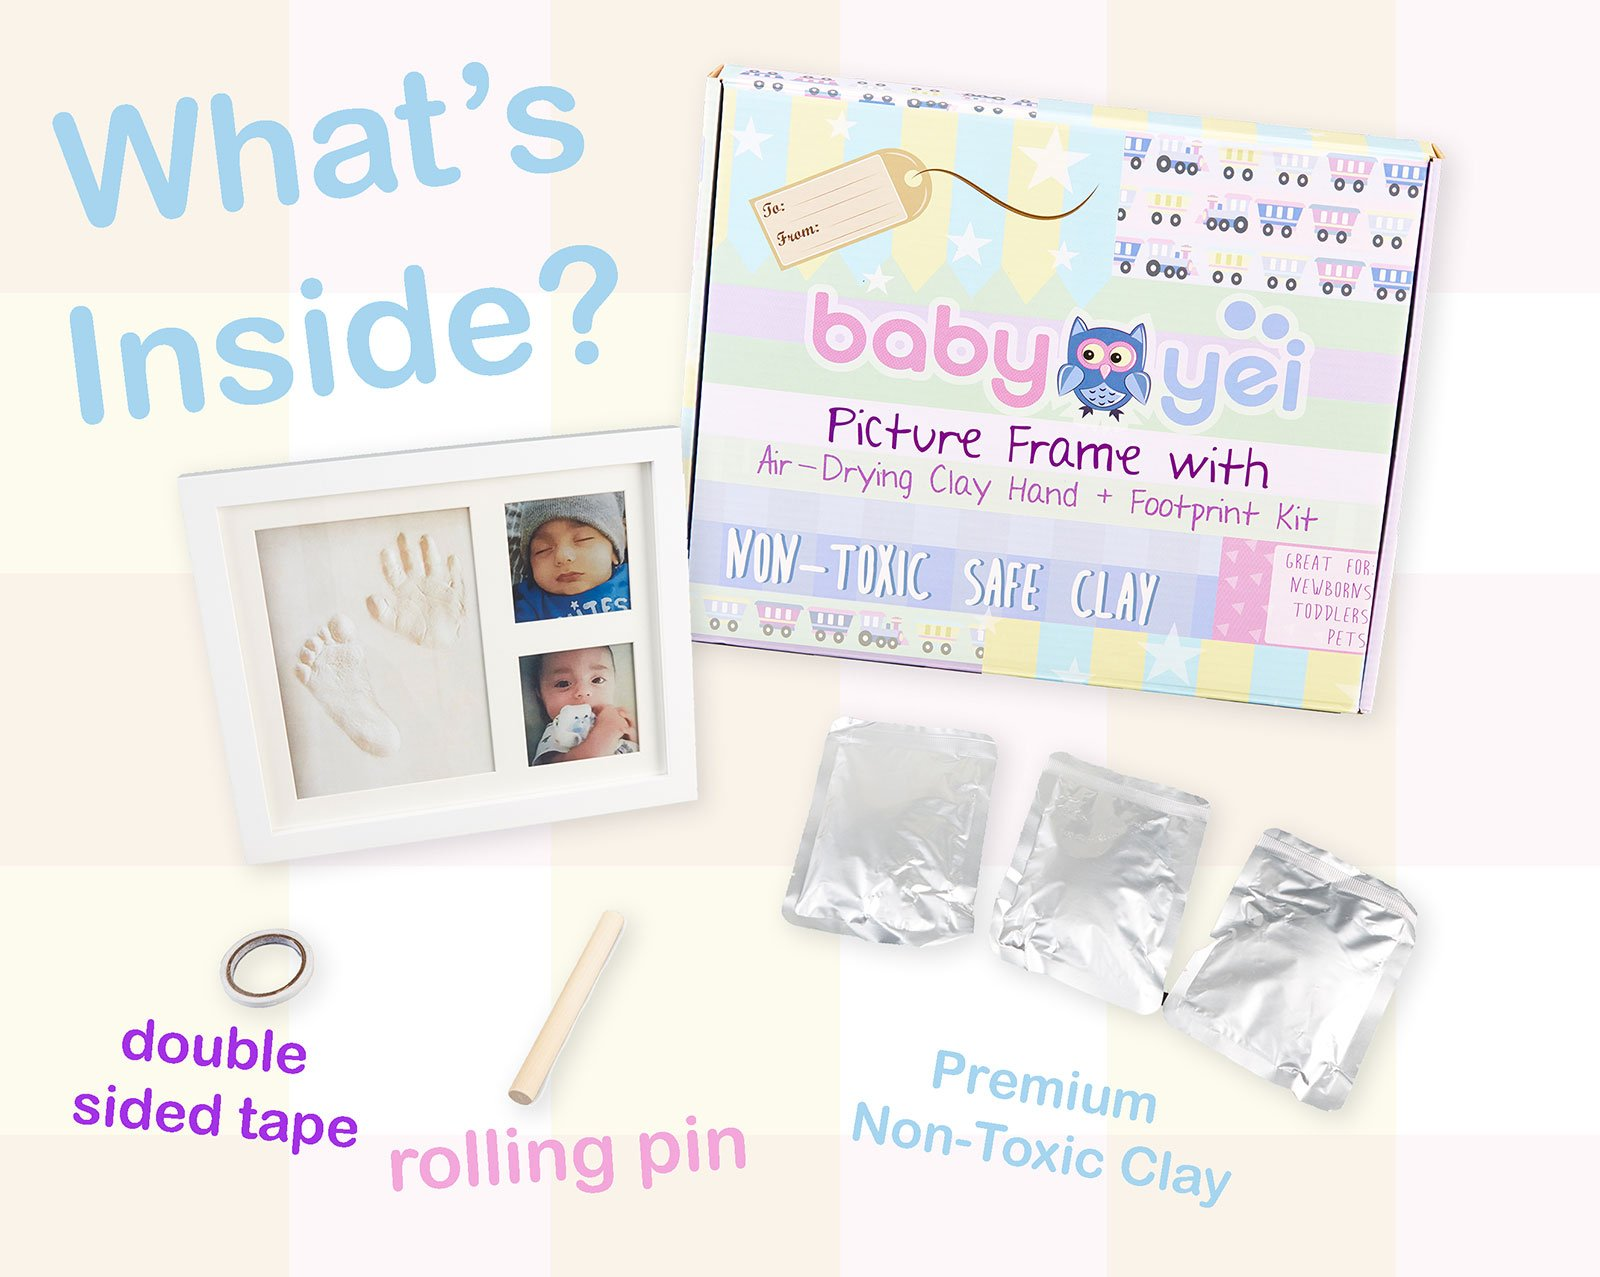 Baby Handprint Picture Frame Clay Kit for Newborn Girls and Boys by Baby Yei - The Photo Frames are Fully Painted White-Prevents Mold Creation-Safe for Treasuring your Angel's First Precious Memories by Baby Yei (Image #3)